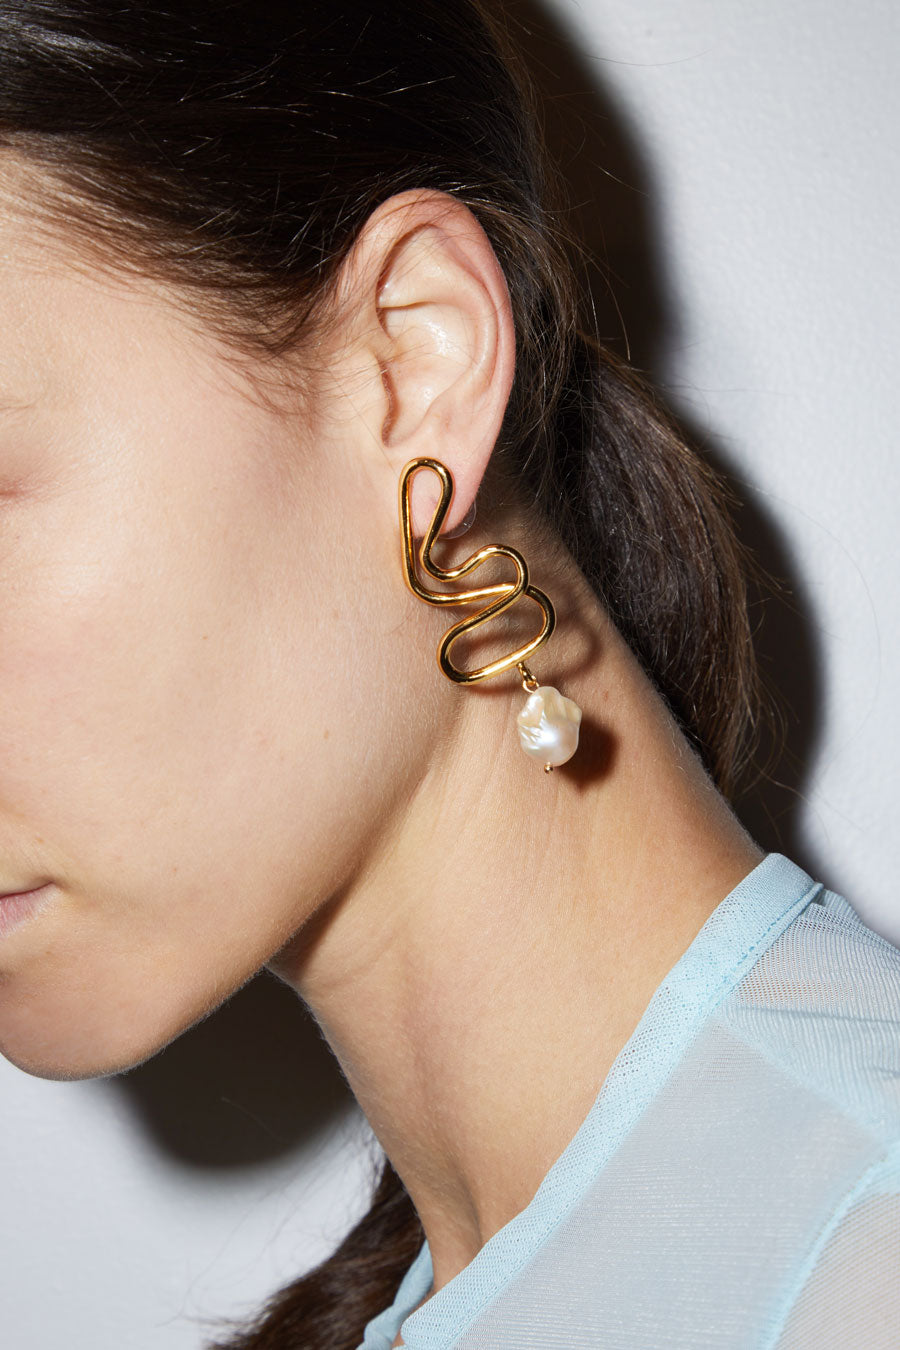 Diana Lecompte Volta Pearl Earrings